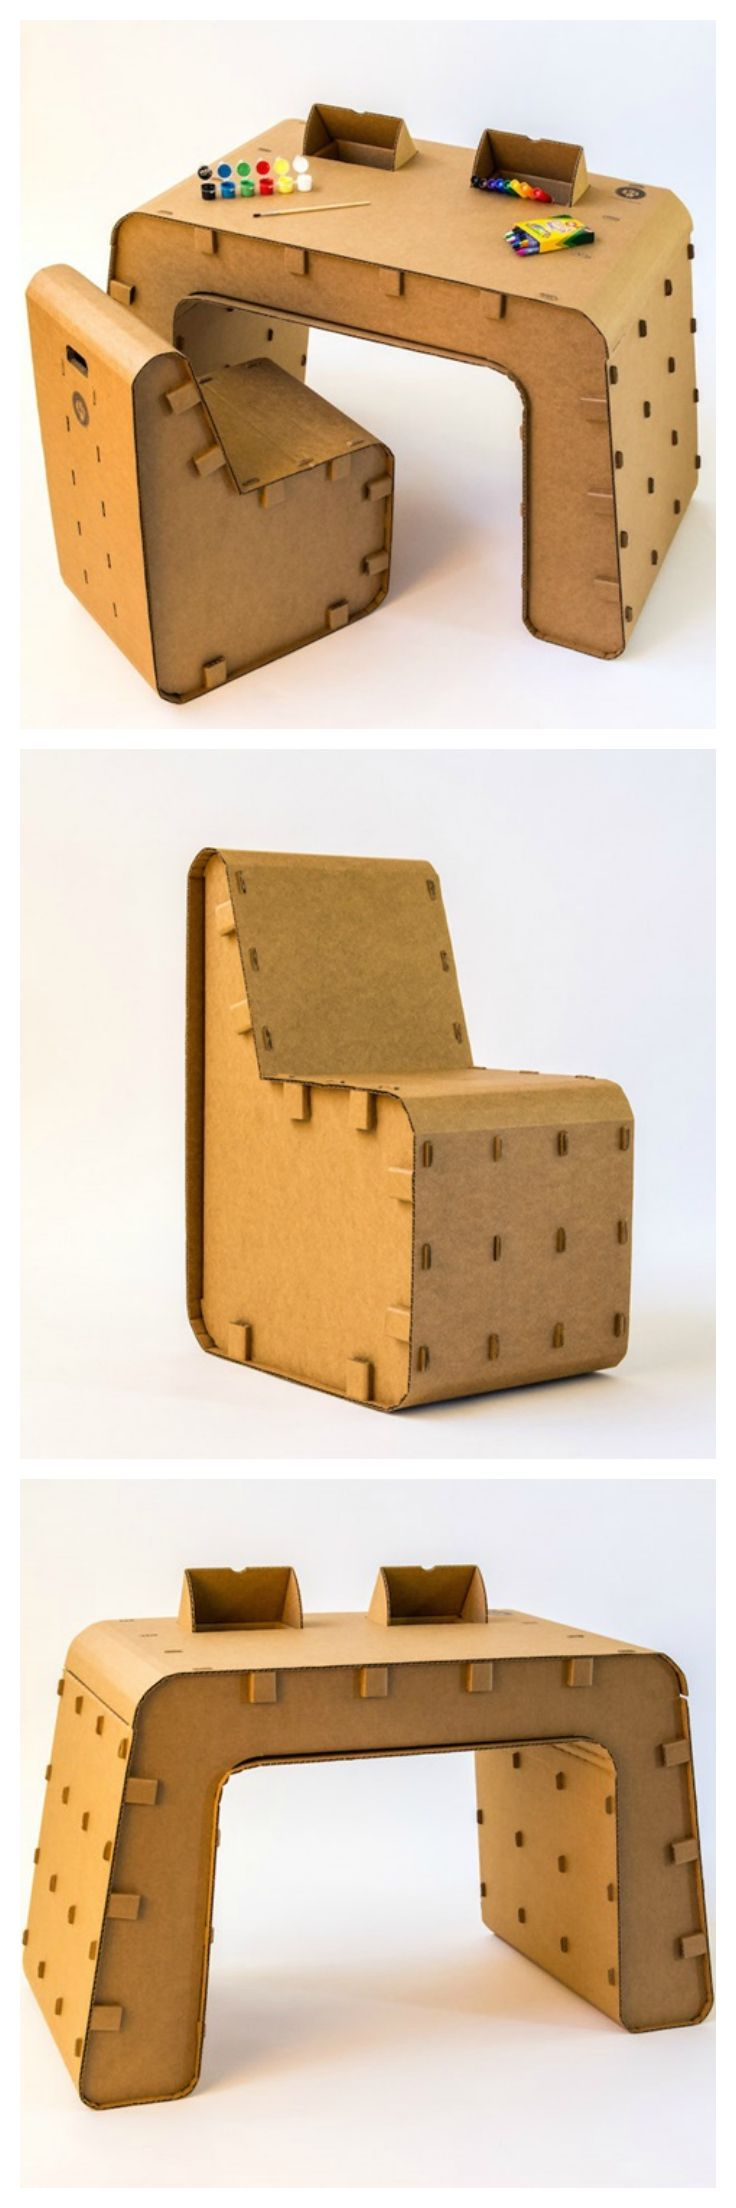 Cardboard Furniture For Kids: The Carboard Guys